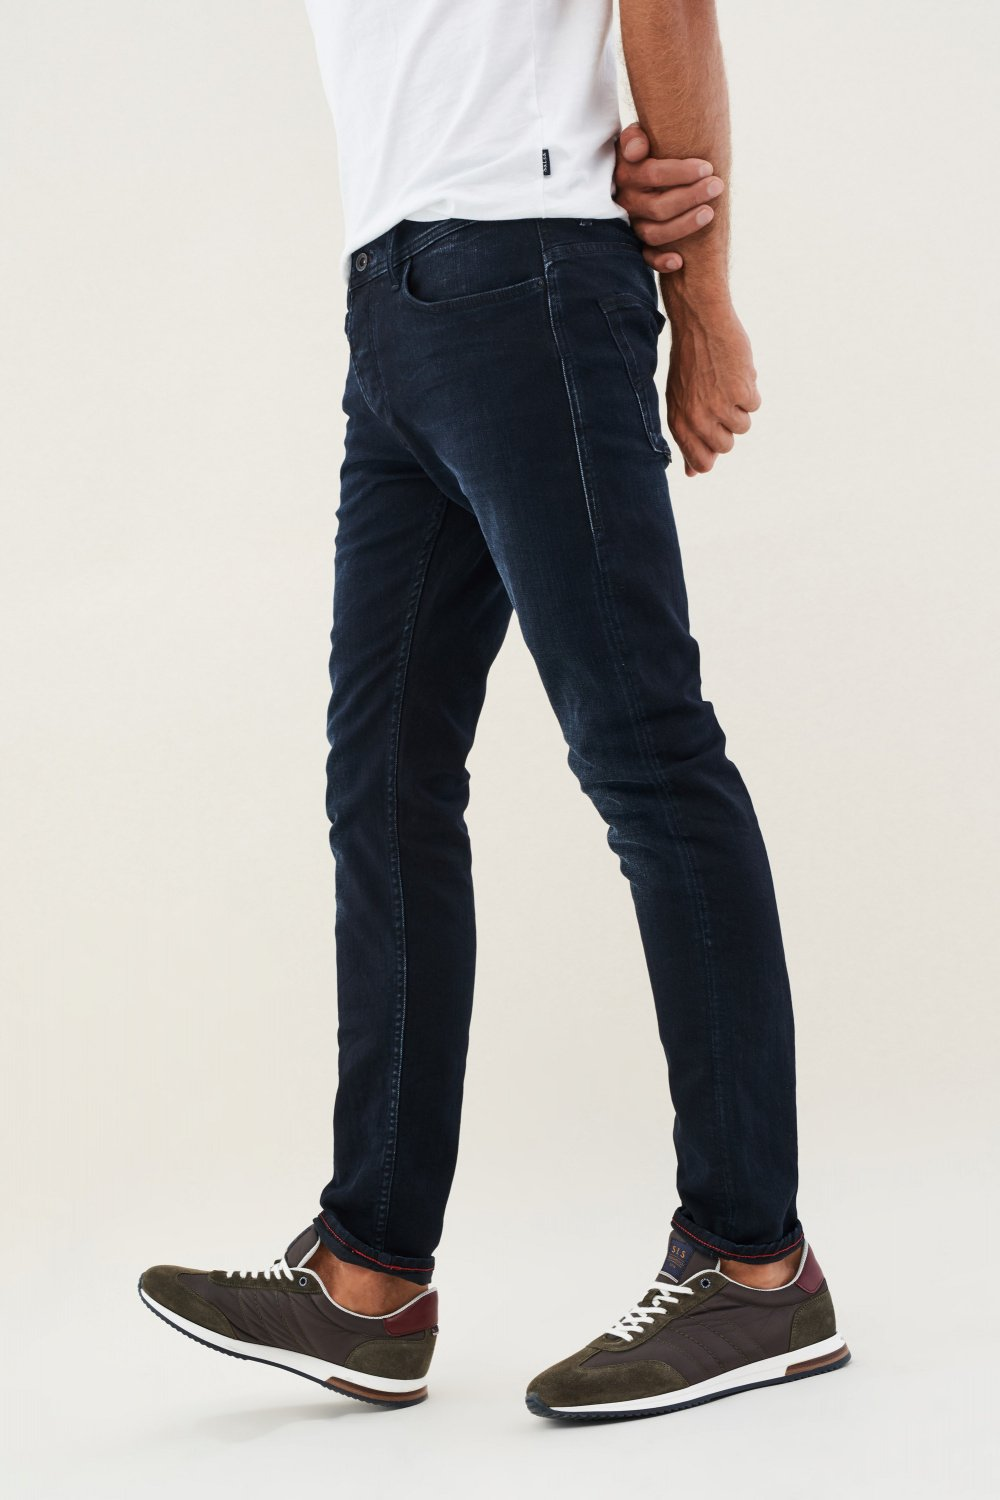 Jeans Slender, Slim Fit Carrot, Denim - Salsa